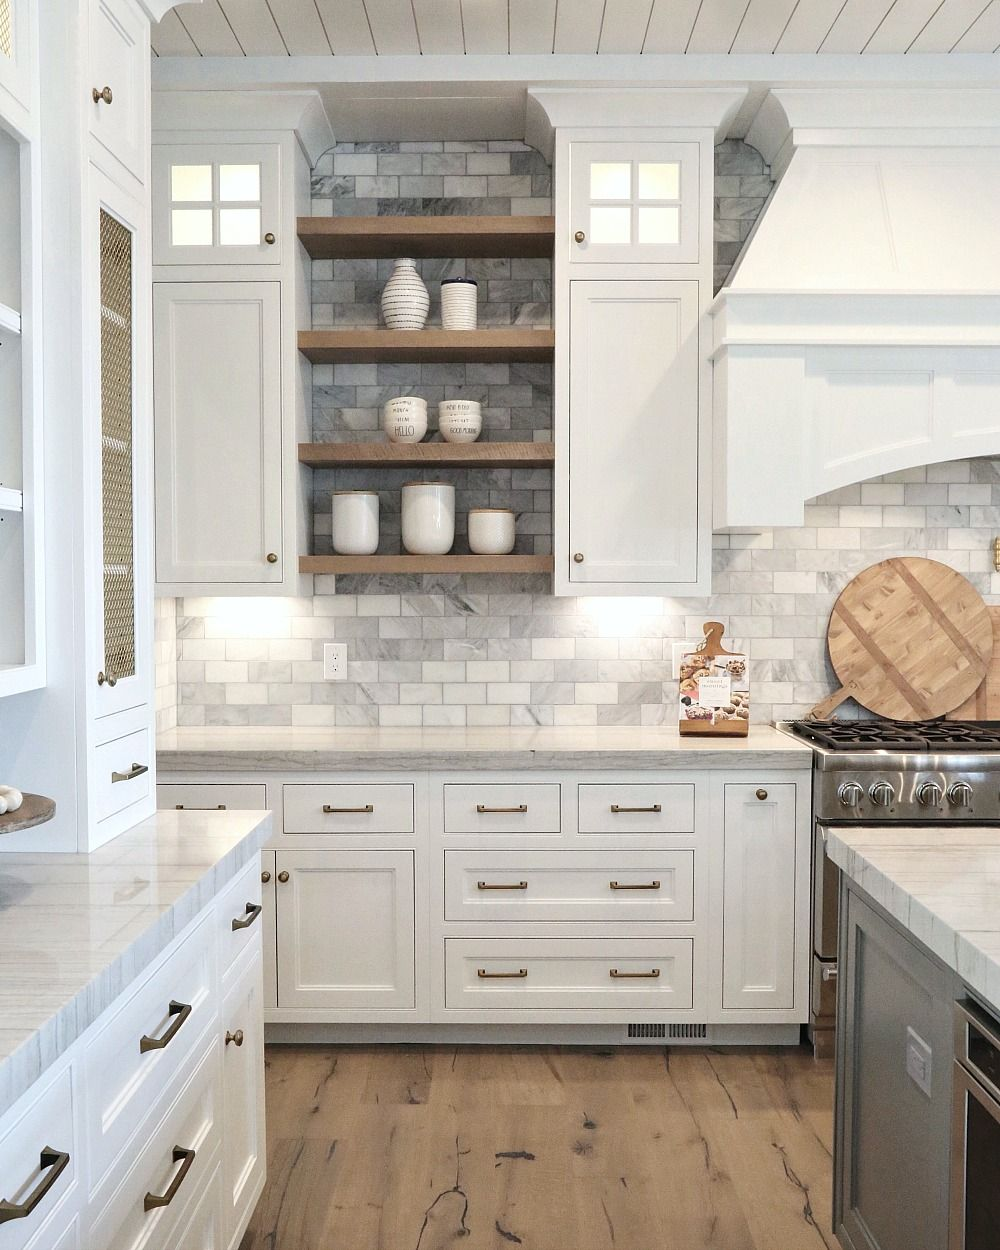 our best tips for staining cabinets decorating floating shelves over kitchen island painted mixed with wood stained lack ikea furniture coat hanger storage white square unit above